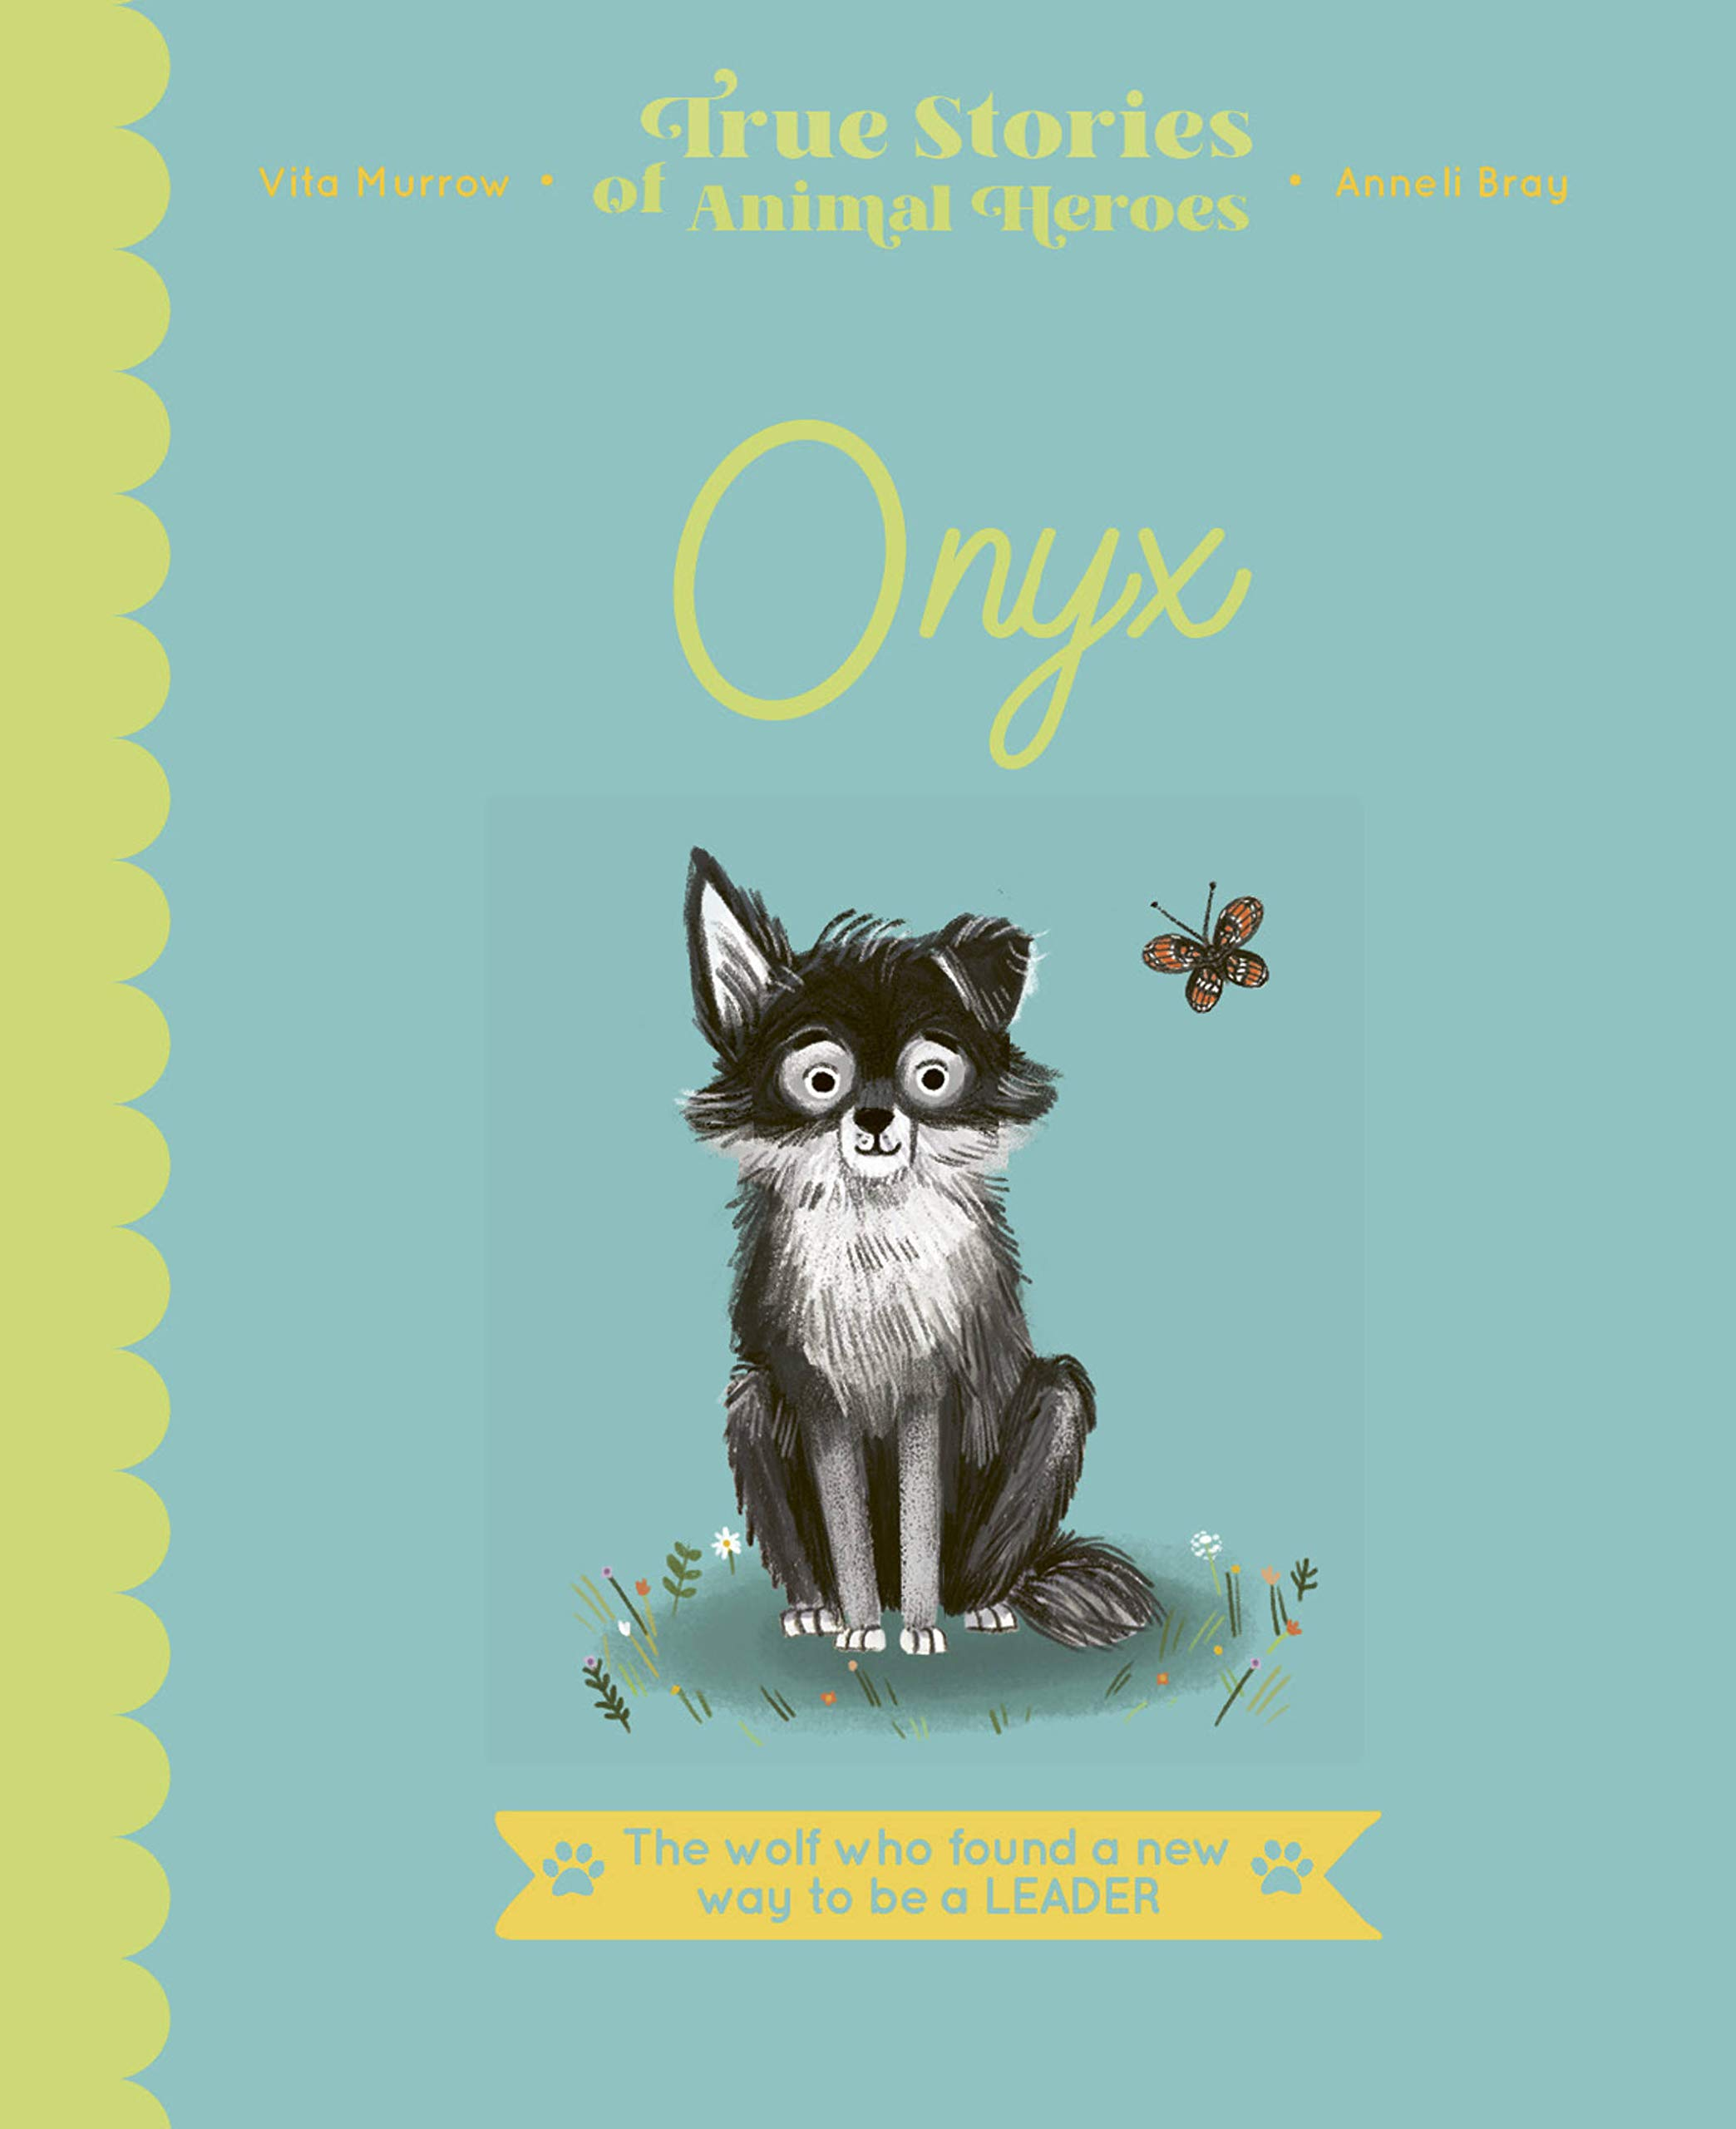 celebrate-picture-books-picture-book-review-true-tales-of-animal-heroes-onyx